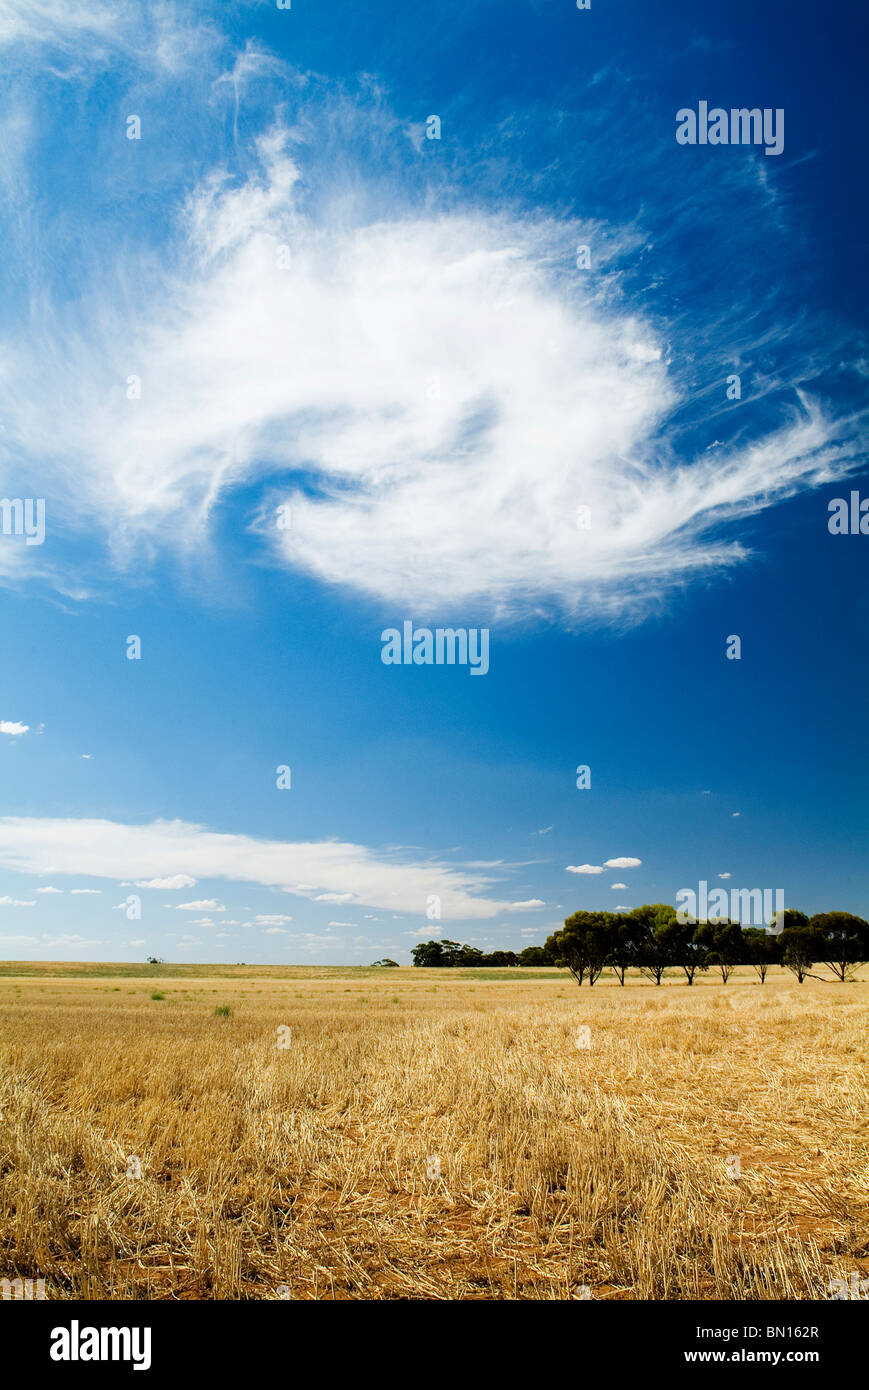 Wheat fields and cloud formations - Stock Image